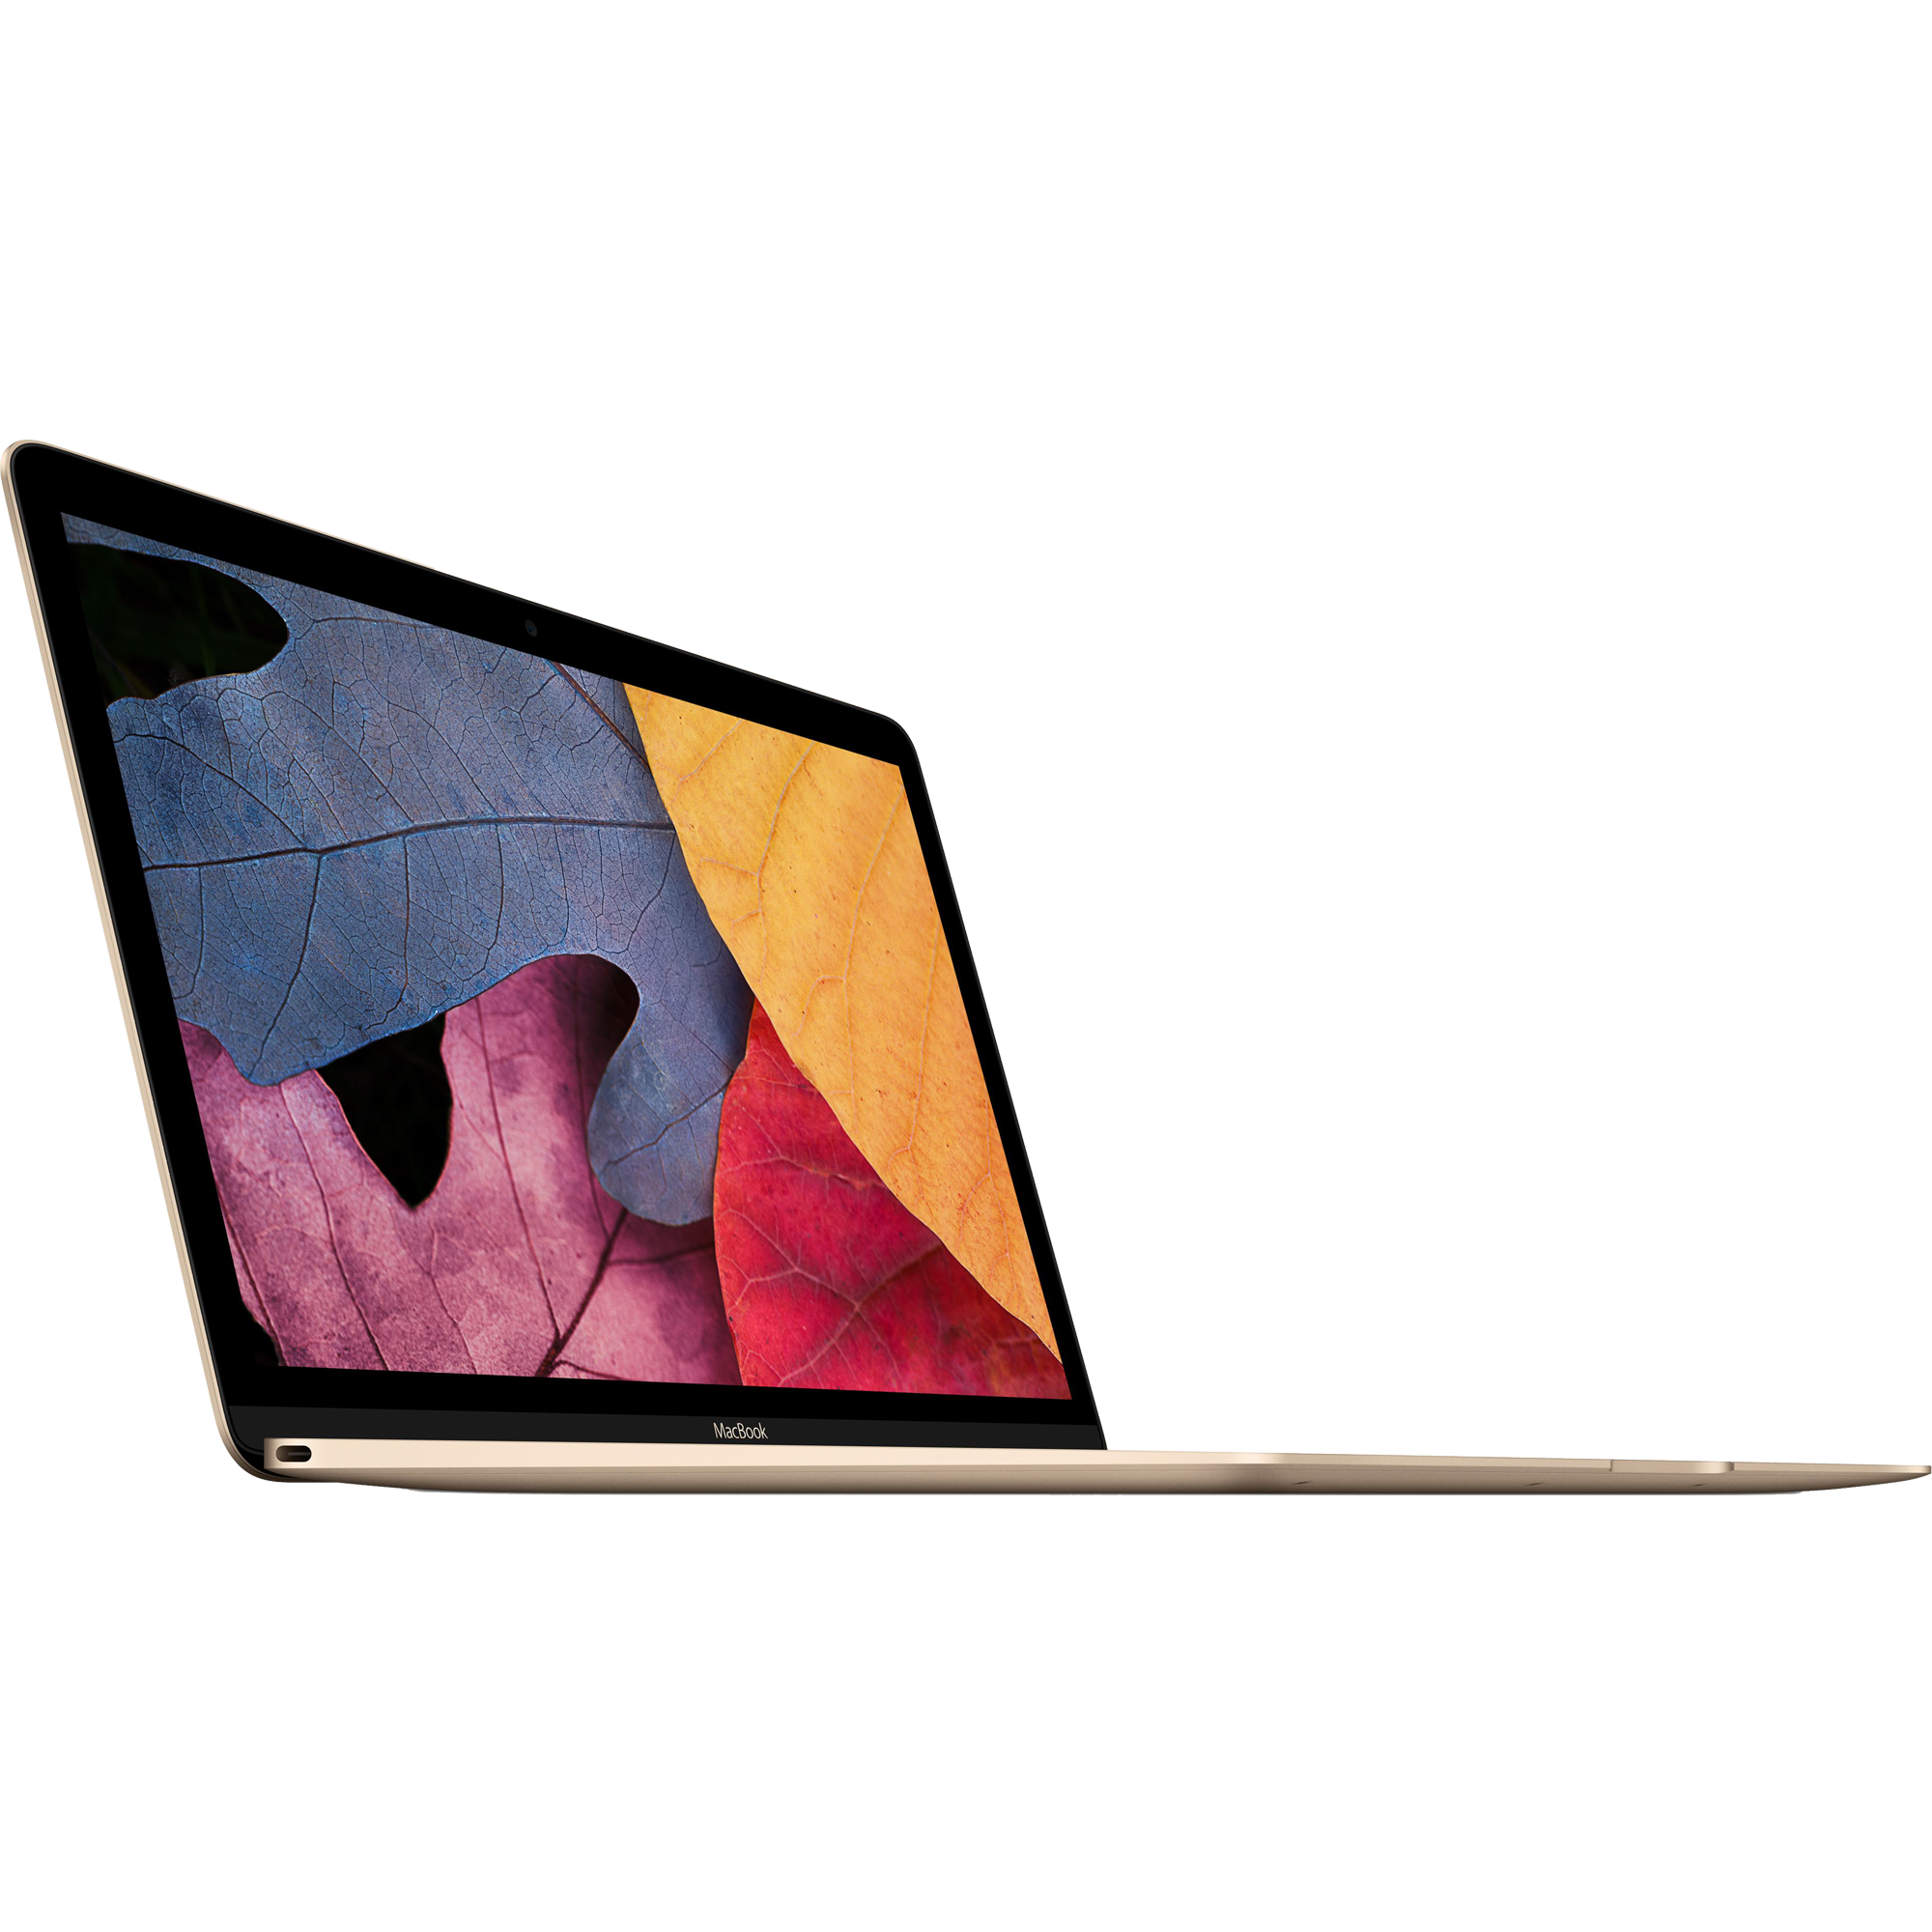 "Ноутбук Apple MacBook 12"" Retina 256 GB Flash Gold (MNYK2), картинка 6"